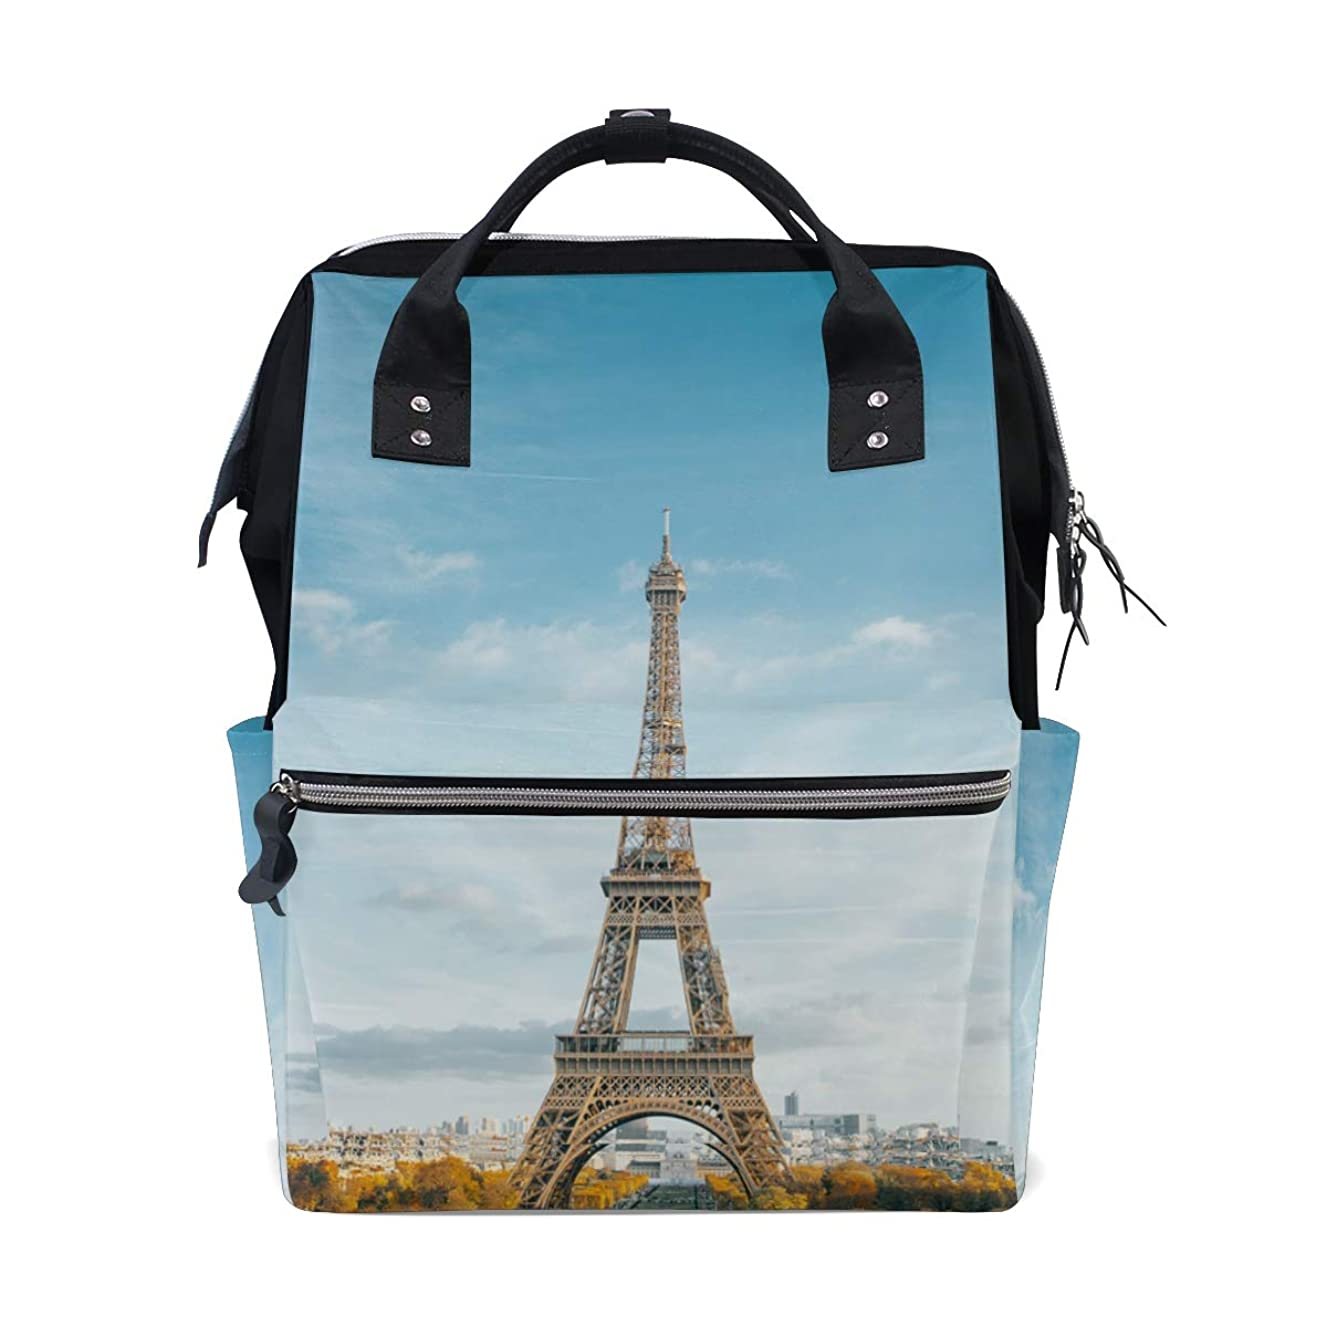 Backpack Eiffel Tower School Rucksack Diaper Bags Travel Shoulder Large Capacity Bookbag for Women Men